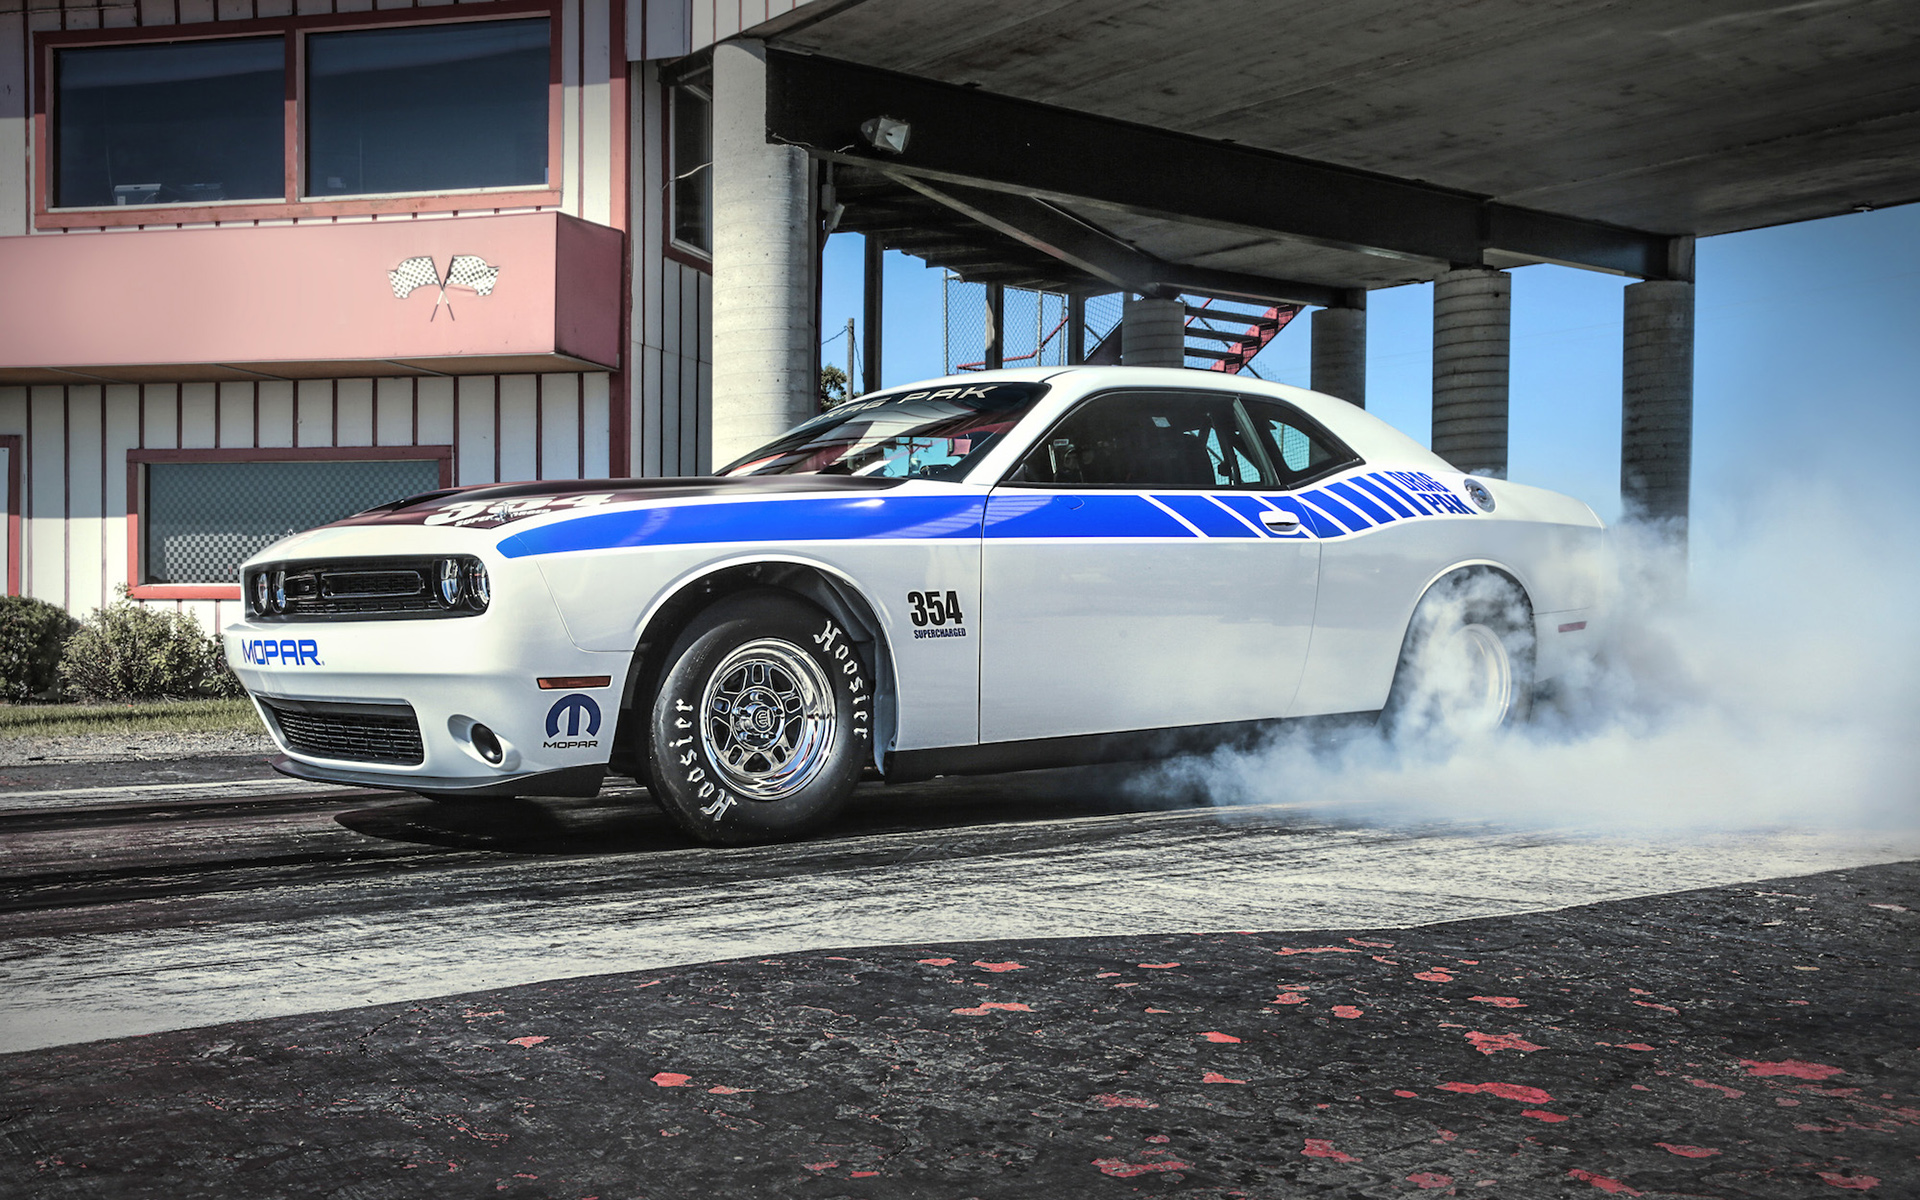 dodge challenger car burnout wallpaper 51704